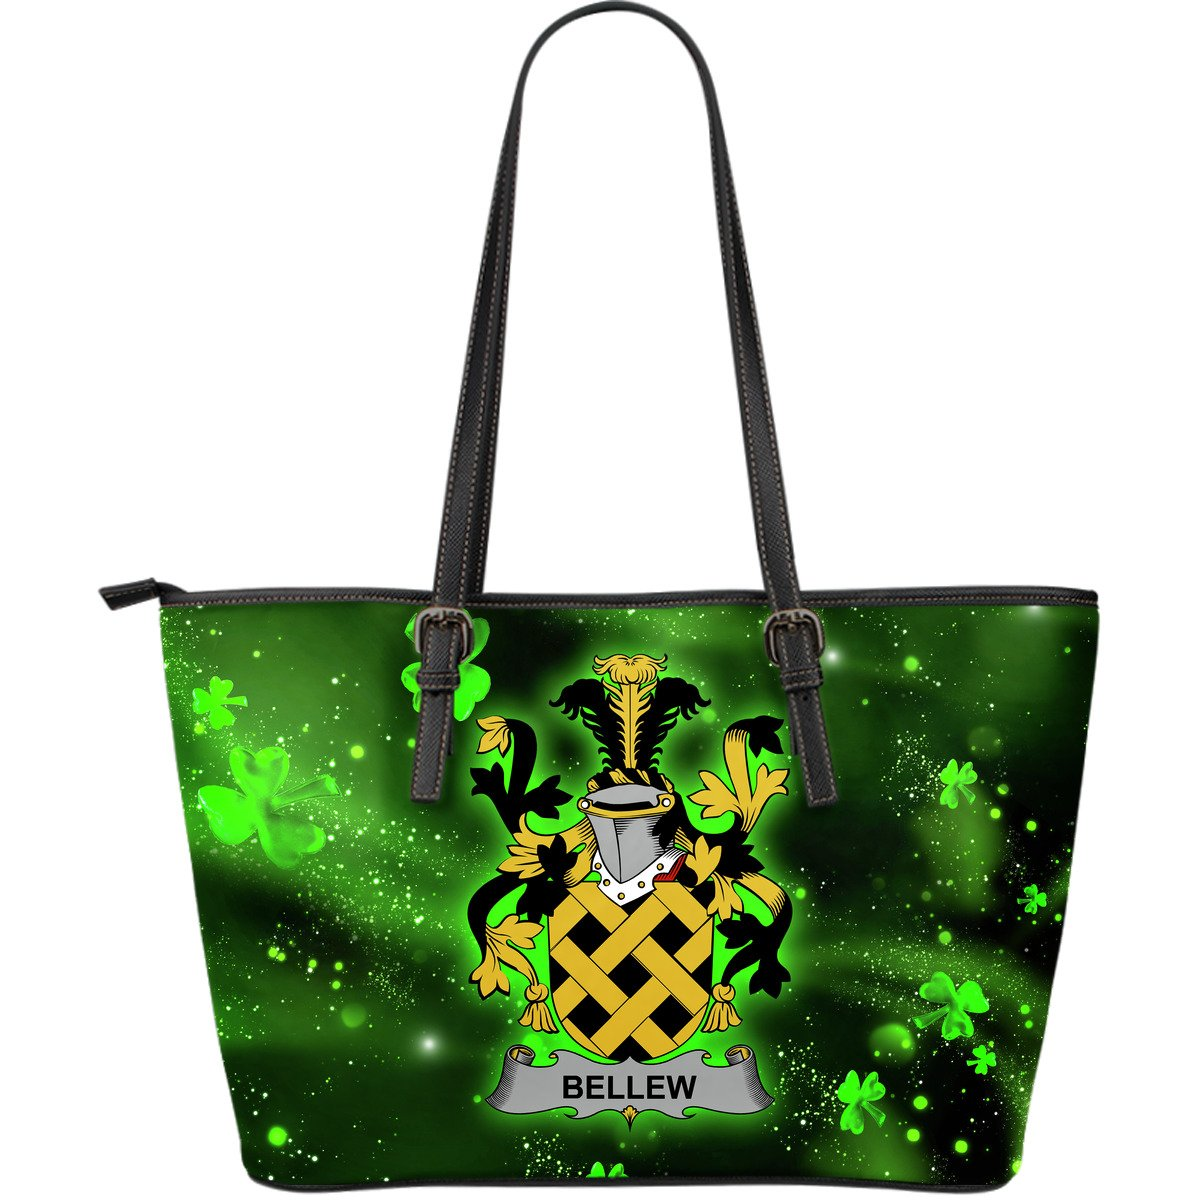 Bellew Ireland Leather Tote Irish Shamrock (Large Size) | Over 1400 Crests | Highest Quality